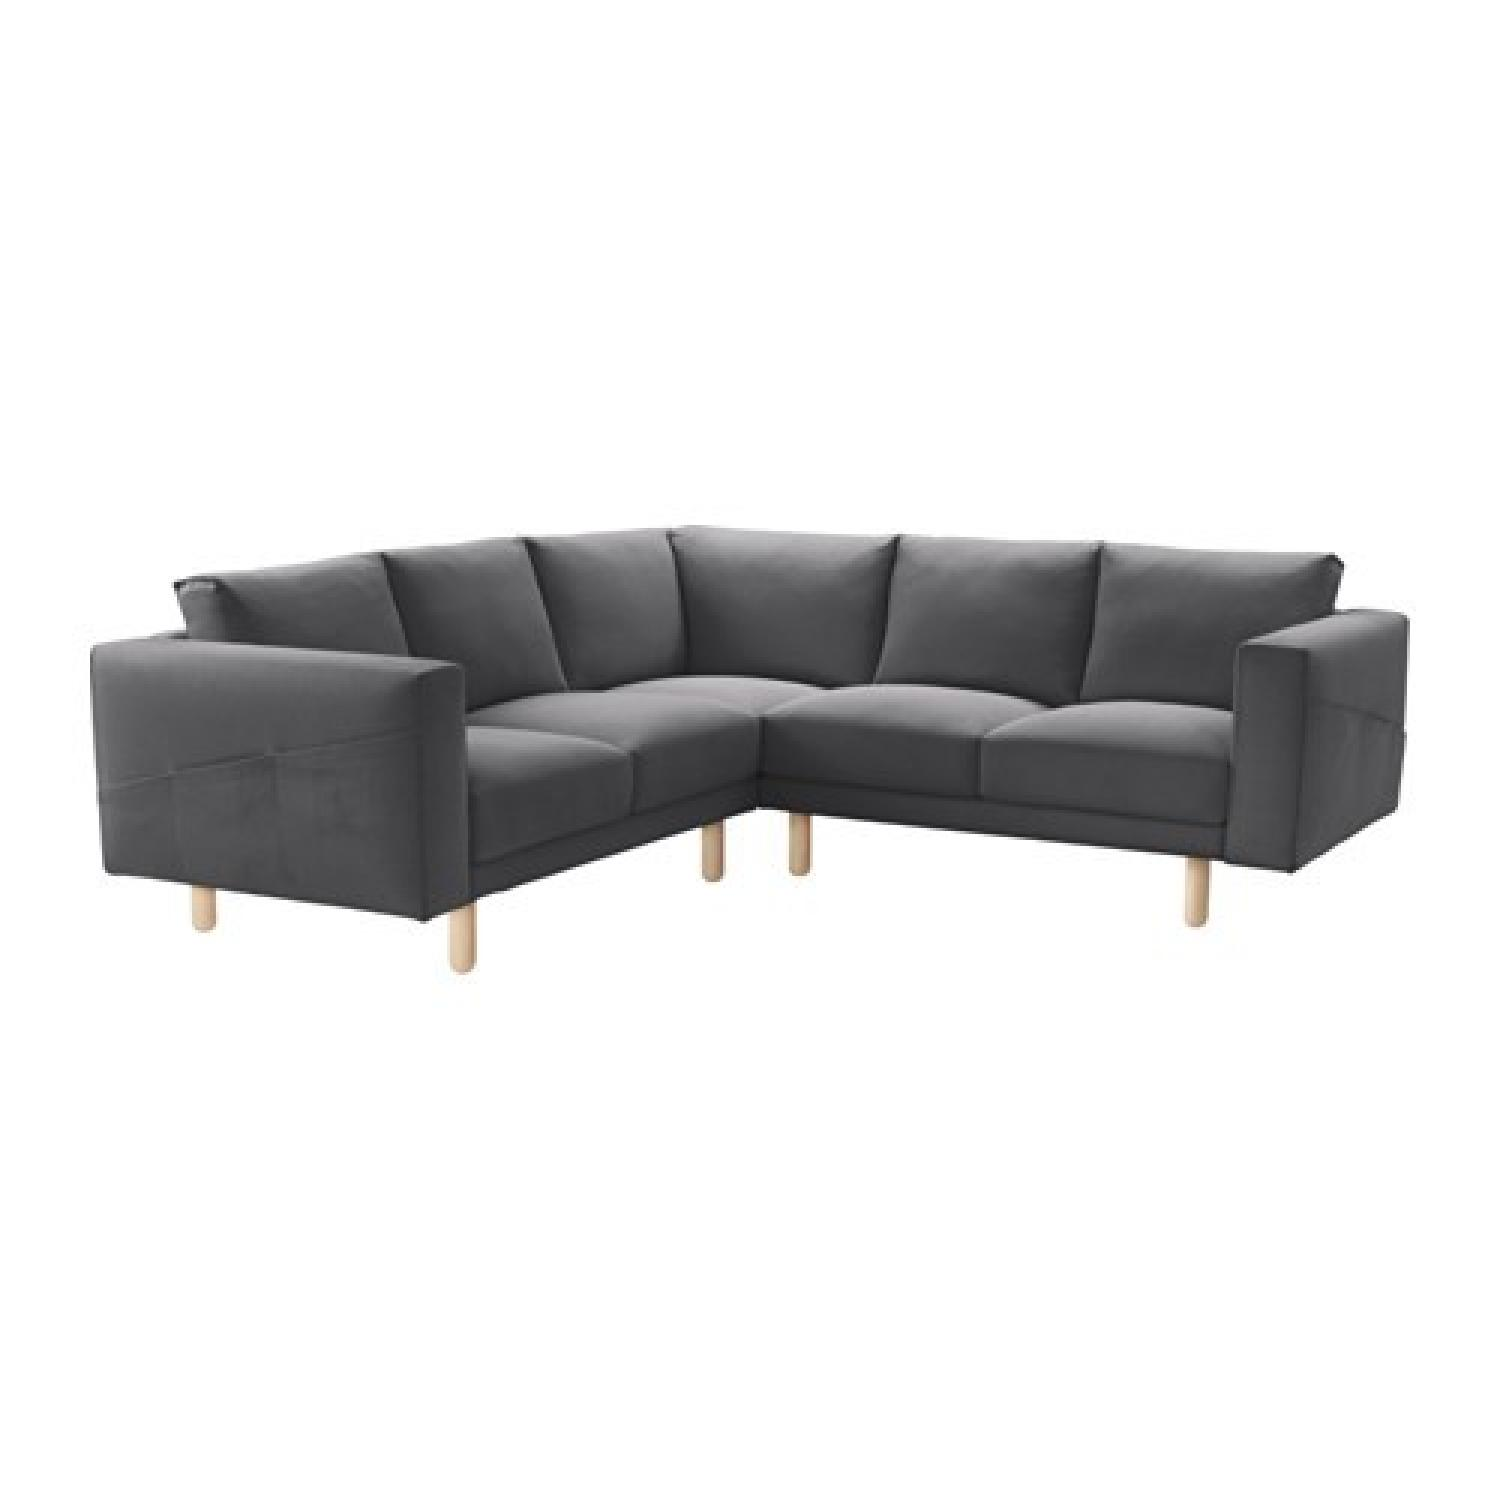 san two contemporary sectional texas corner handmade brianform idp antonio charlize italian very sku soft p tone leather